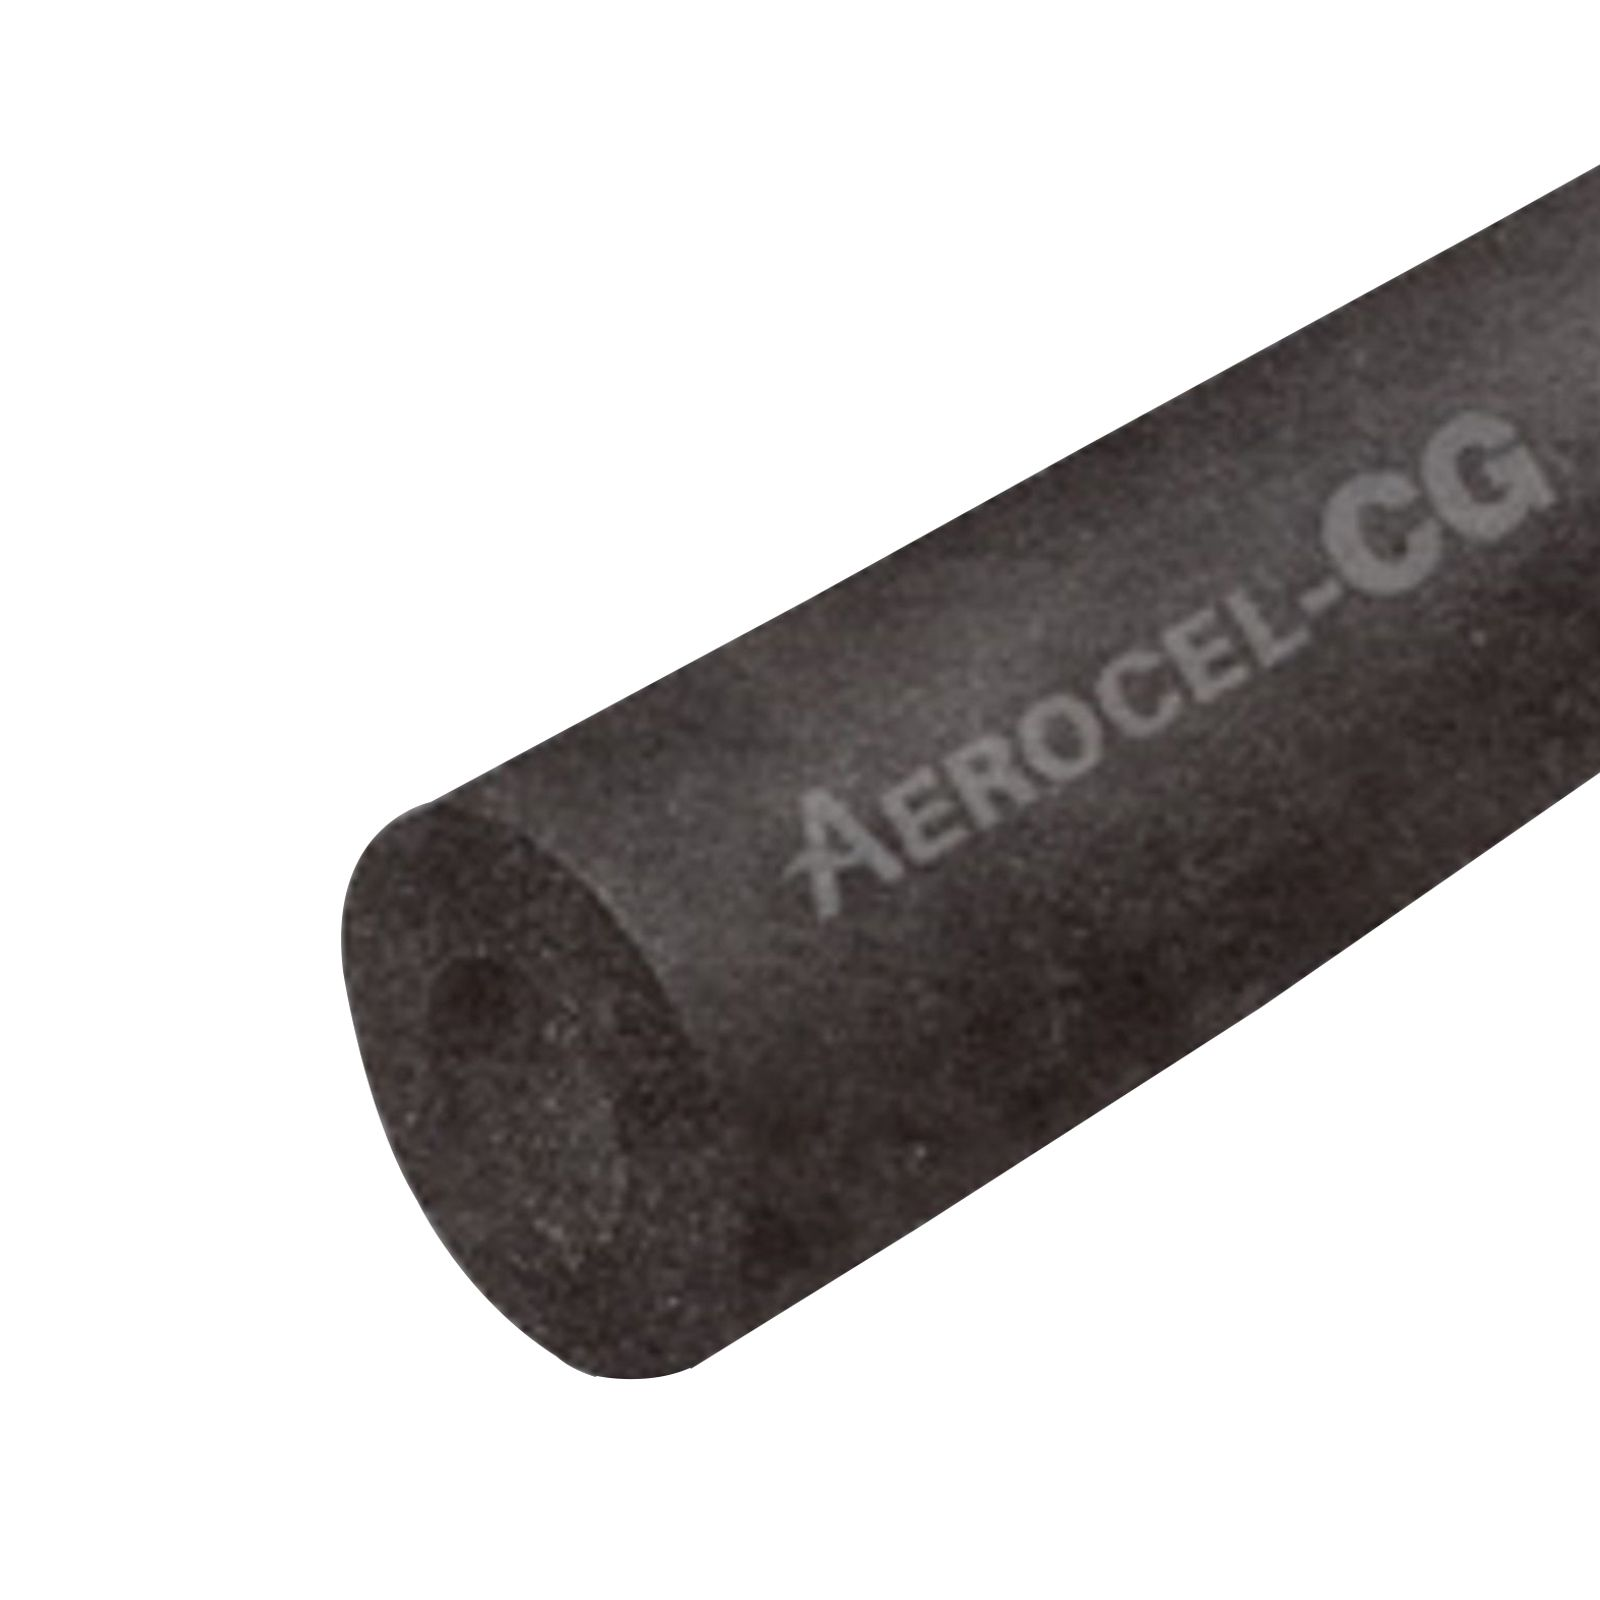 "Aeroflex CG3438 - Elastomeric Tubing Insulation, 3/4"" ID X 3/8"" Wall Thickness, Fits 3/4"" OD Copper Tubing, Residential Only"